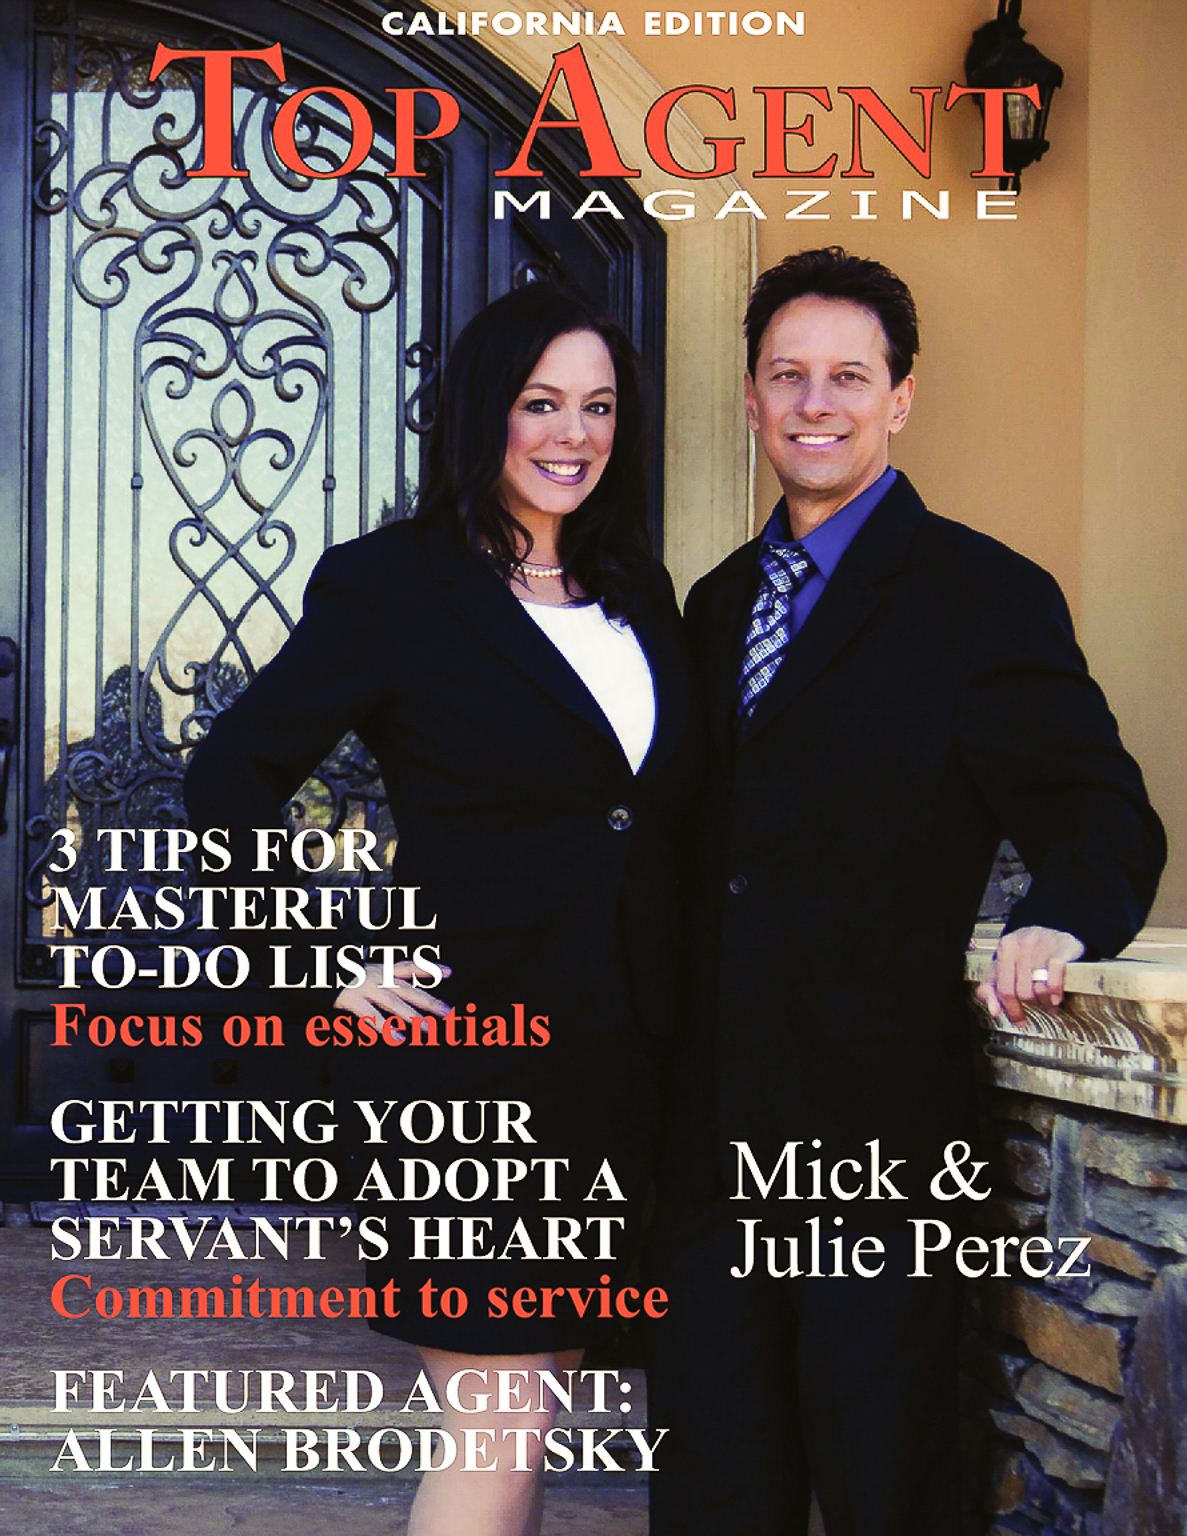 Mick and Julie Perez - Top Agent Magazine, Your Trusted Real Estate Experts